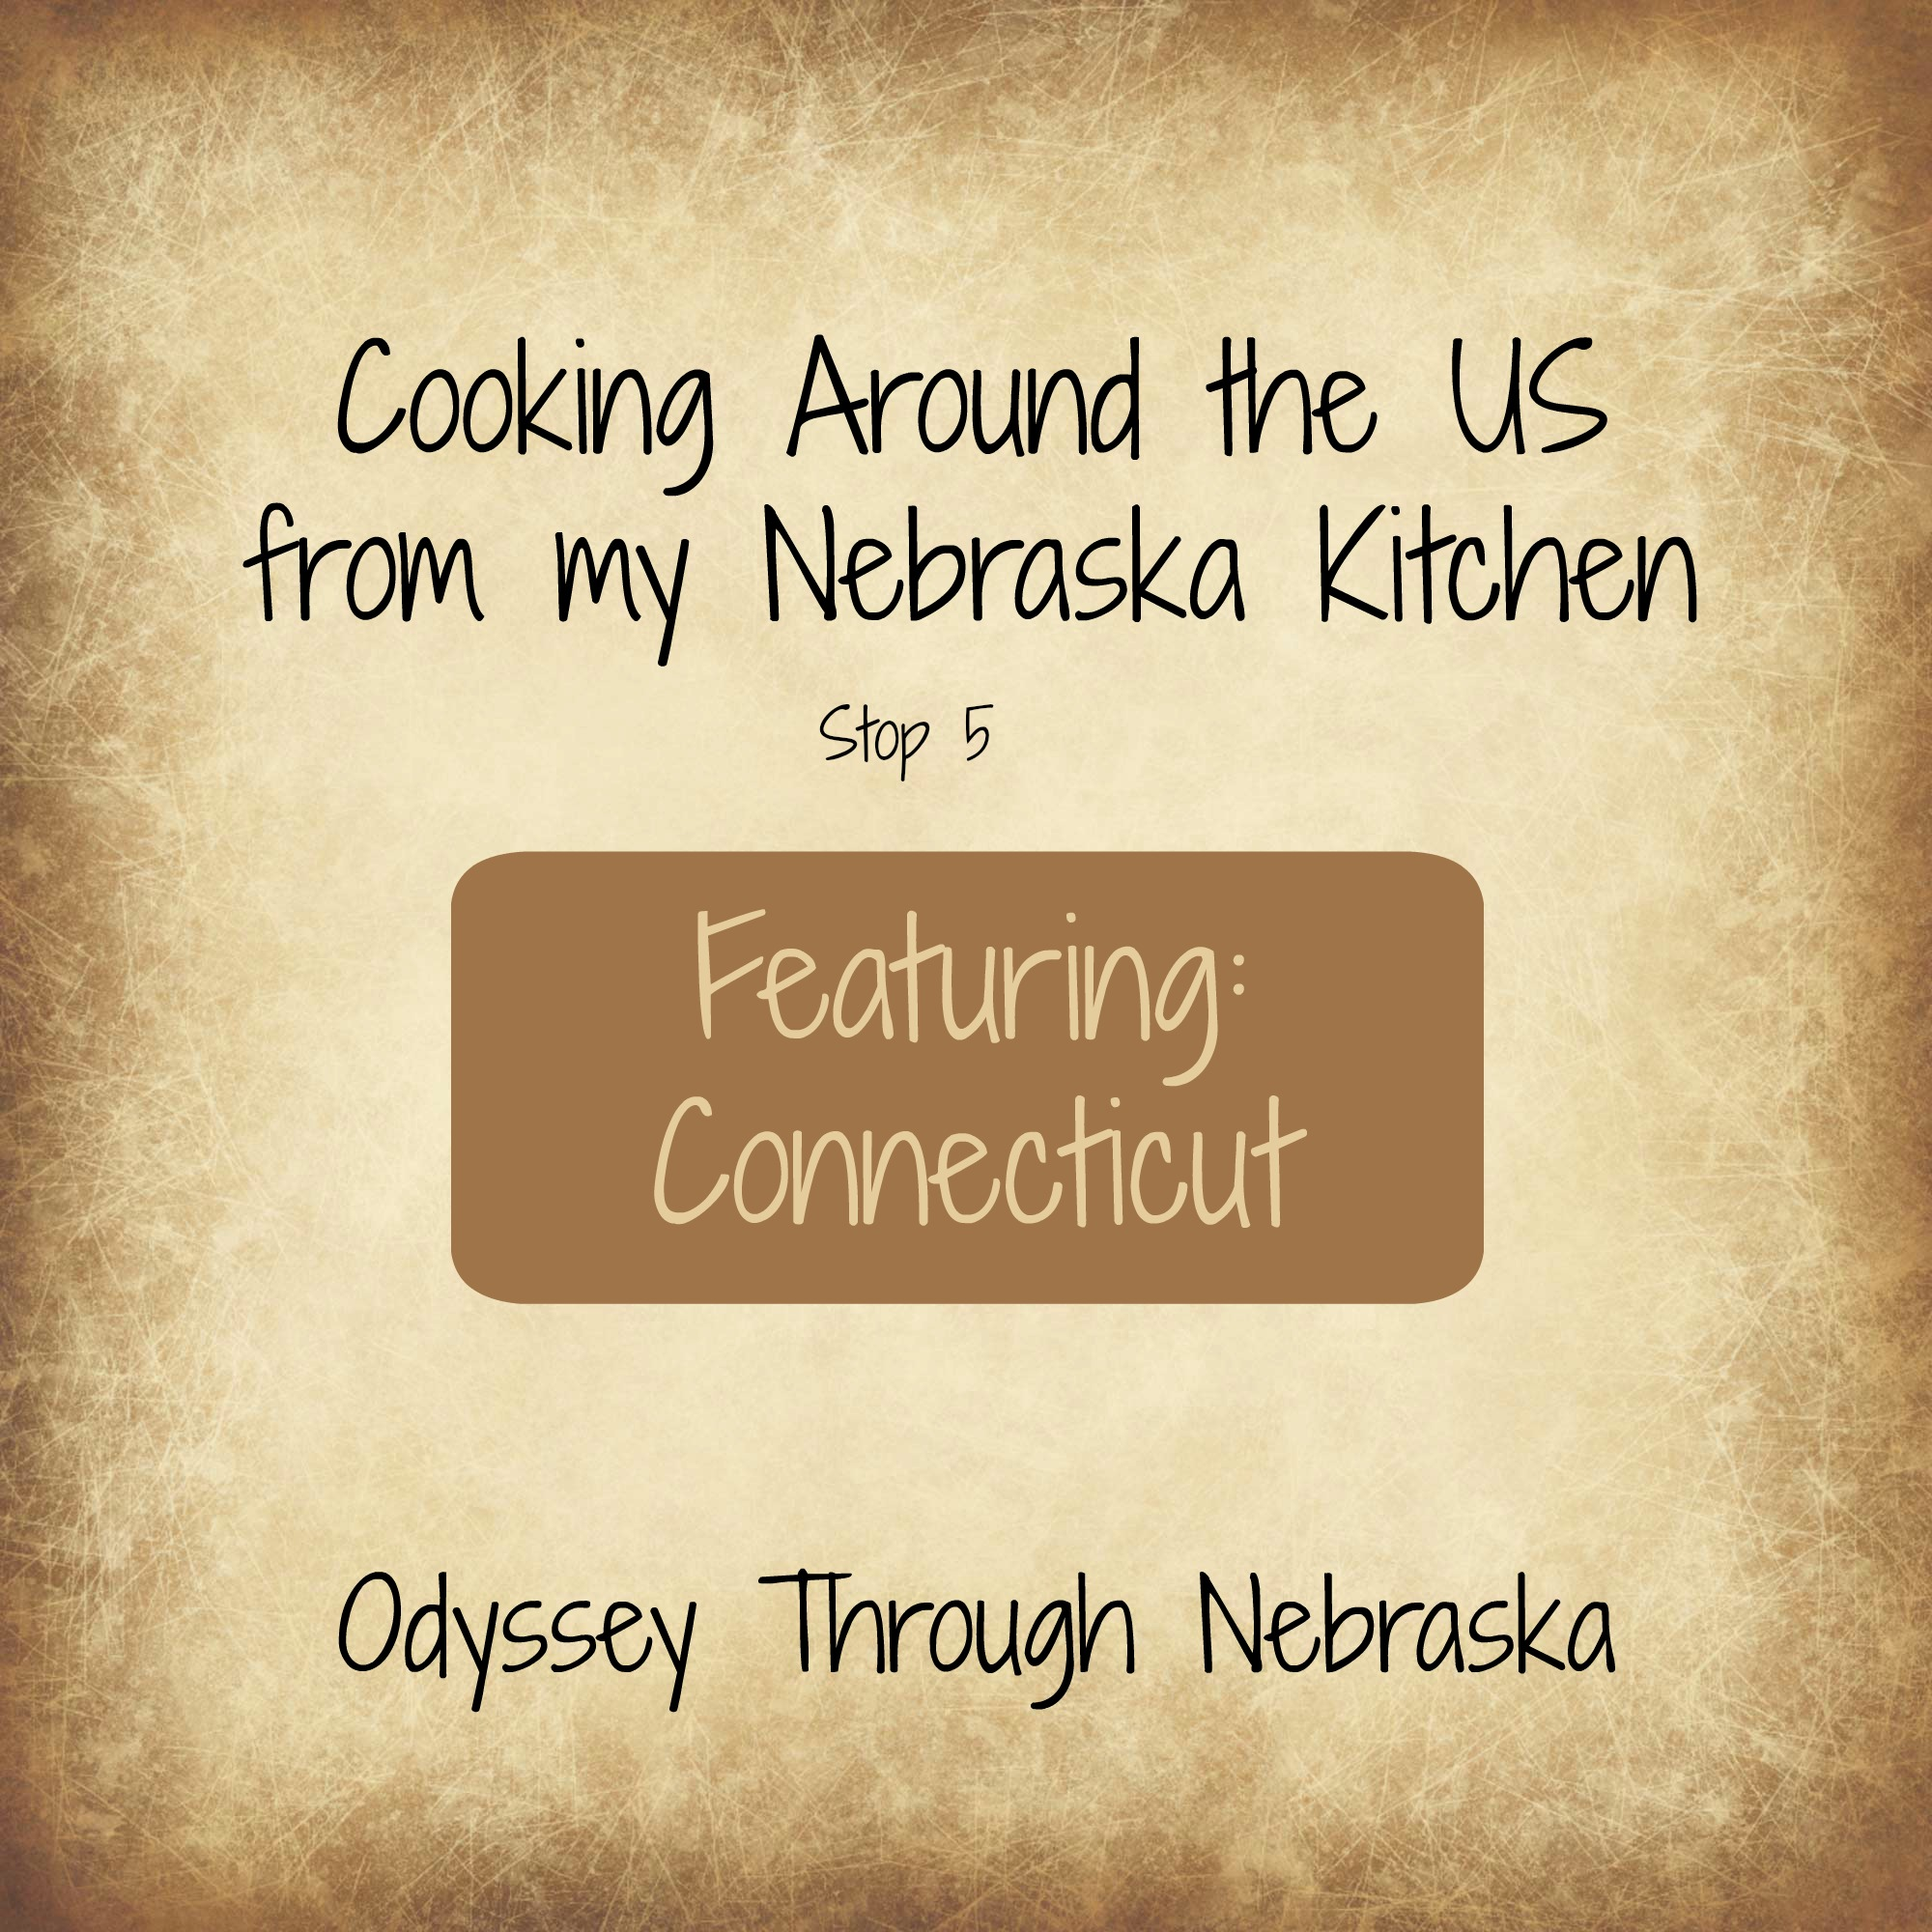 United States recipe series